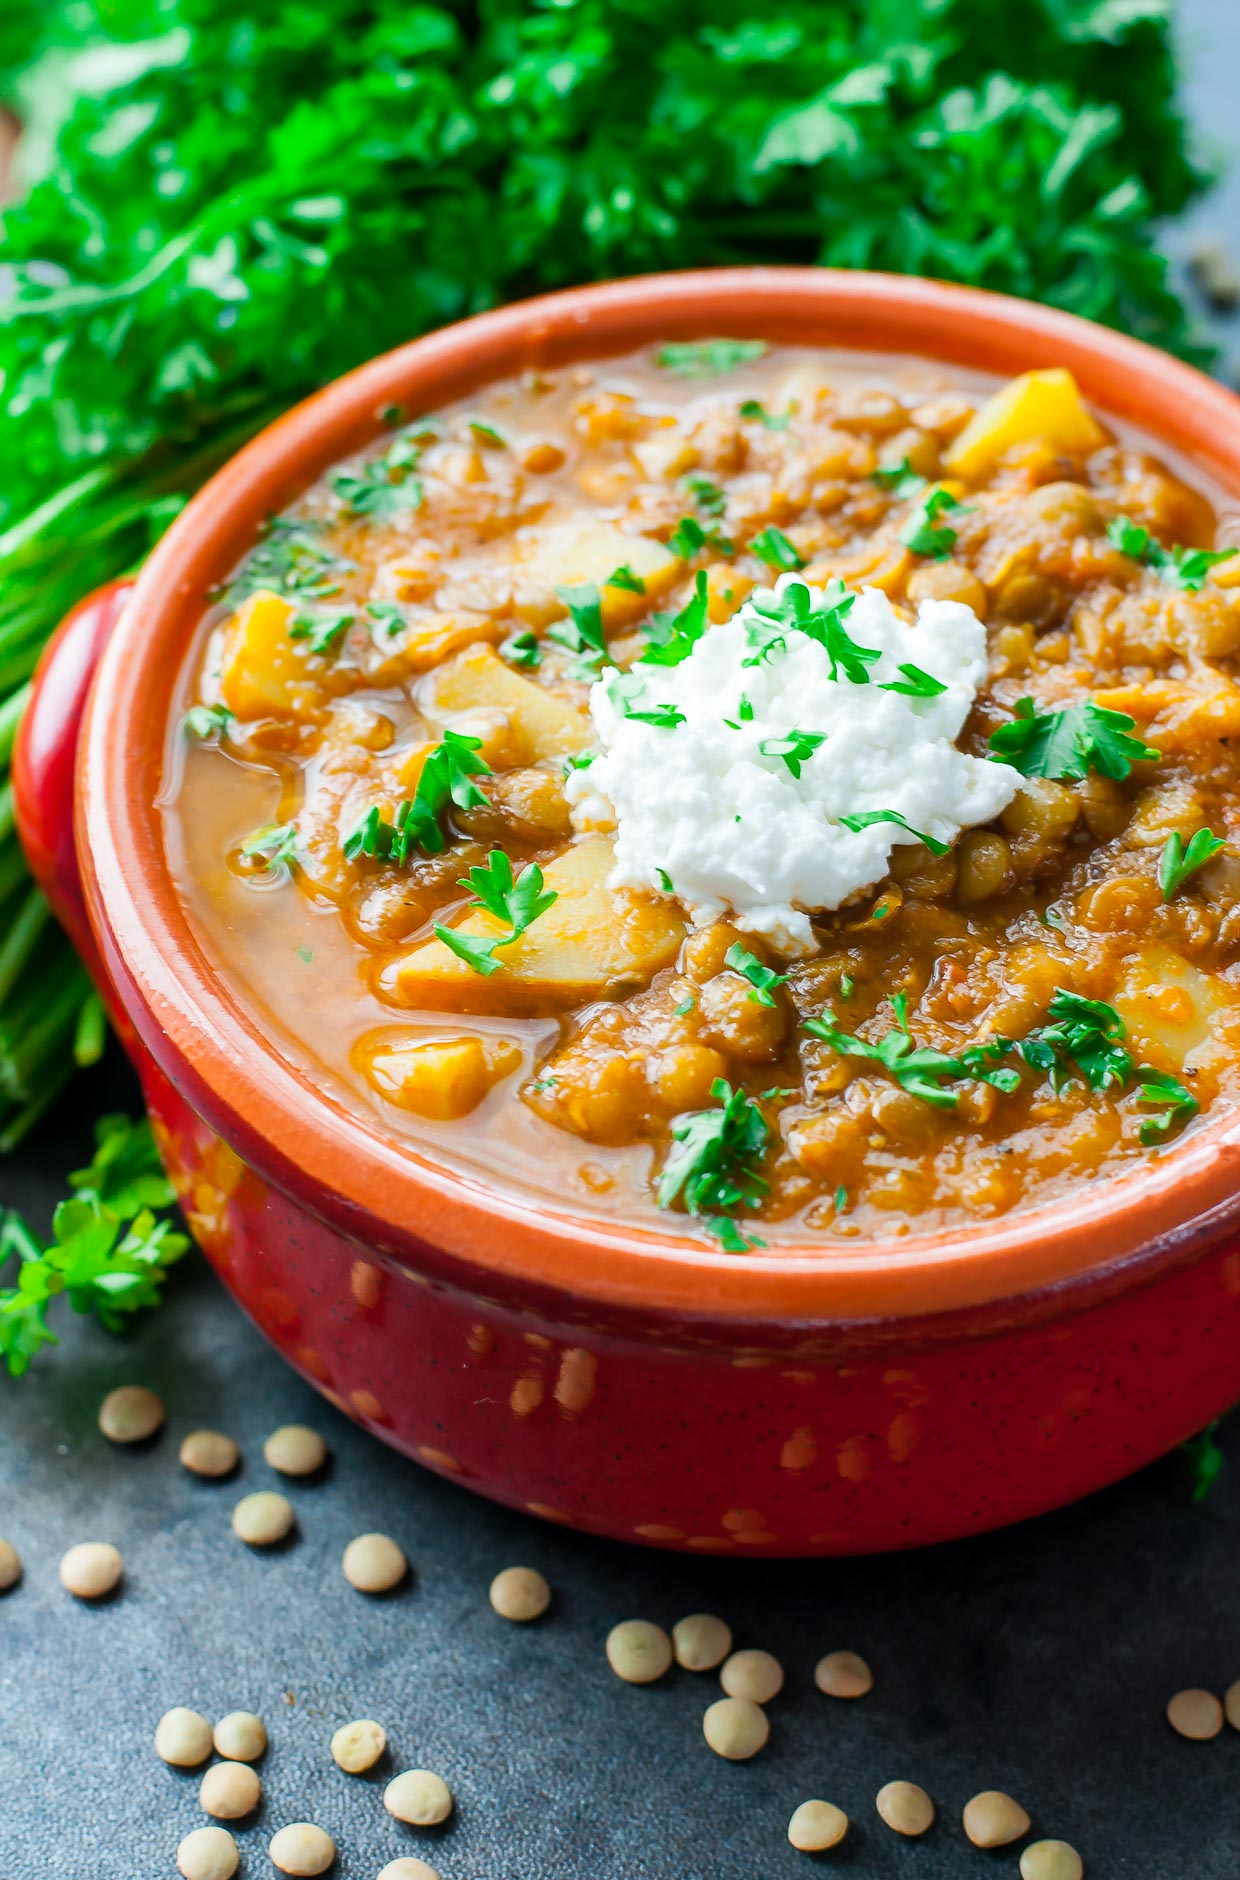 This healthy vegetarian madras lentil soup channels the flavor of my favorite crock-pot lentil dish in a delicious vegan soup!